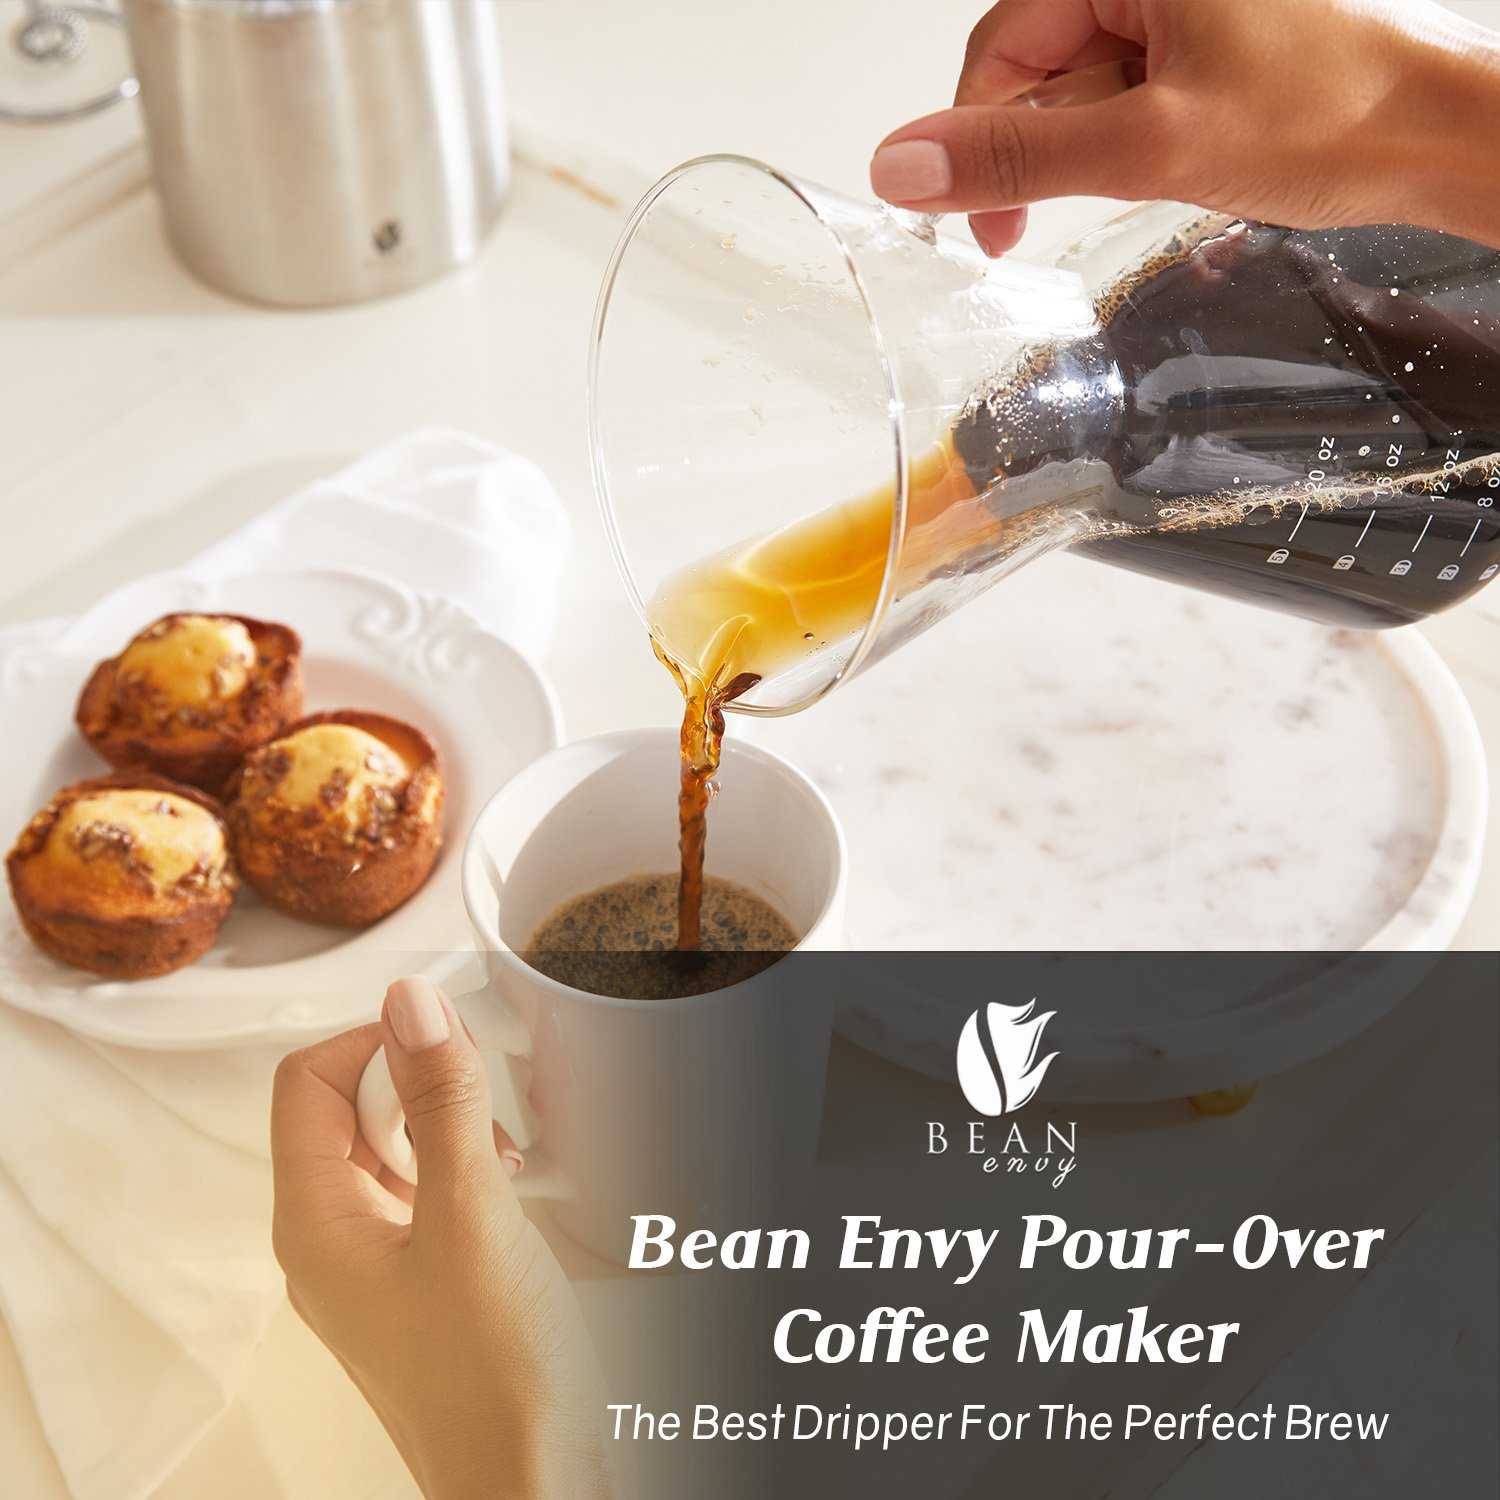 Bean Envy Pour Over Coffee Maker - 20 - oz Borosilicate Glass Carafe - Rust Resistant Stainless Steel Paperless Filter/Dripper - Includes Patent Pending Silicone Sleeve by Bean Envy (Image #6)